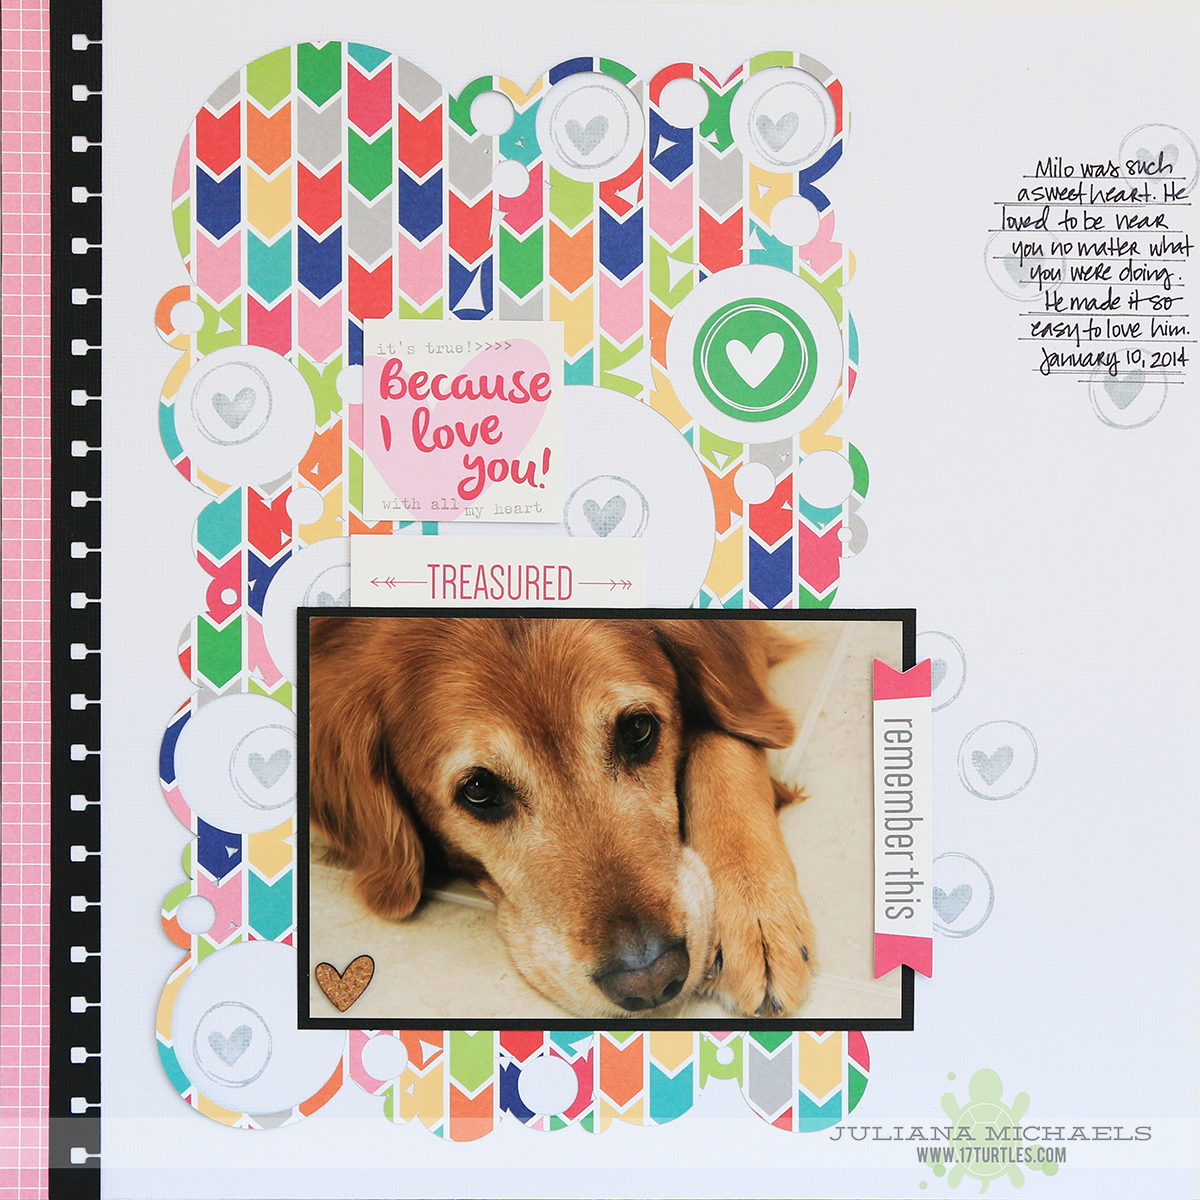 Because I Love You Scrapbook Page by Juliana Michaels featuring Elle's Studio Shine collection and September 2014 Exclusive Kit